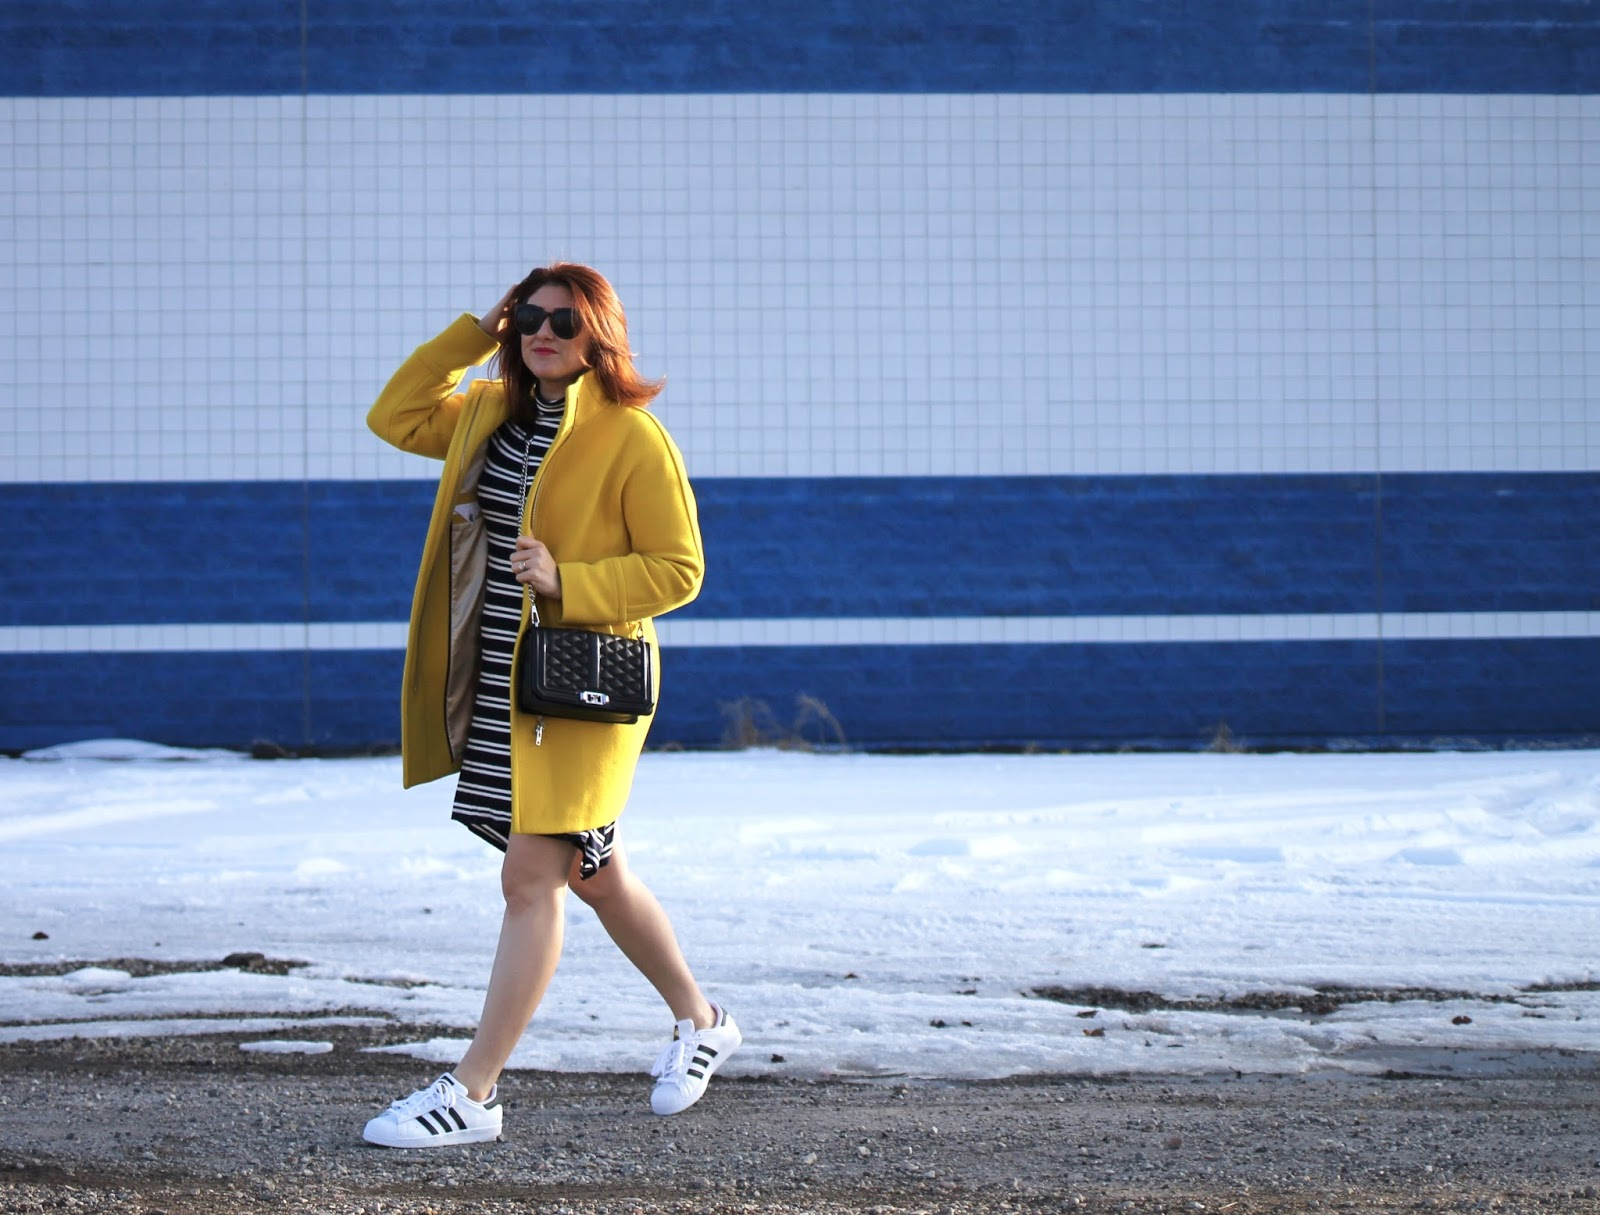 Golden Sun cocoon coat by j crew with a super soft and comfortable casual dress from Anthropologie. Looks great with adidas Classics and the rebecca Minkoff love crossbody chain strap bag in black. Easy date night outfit